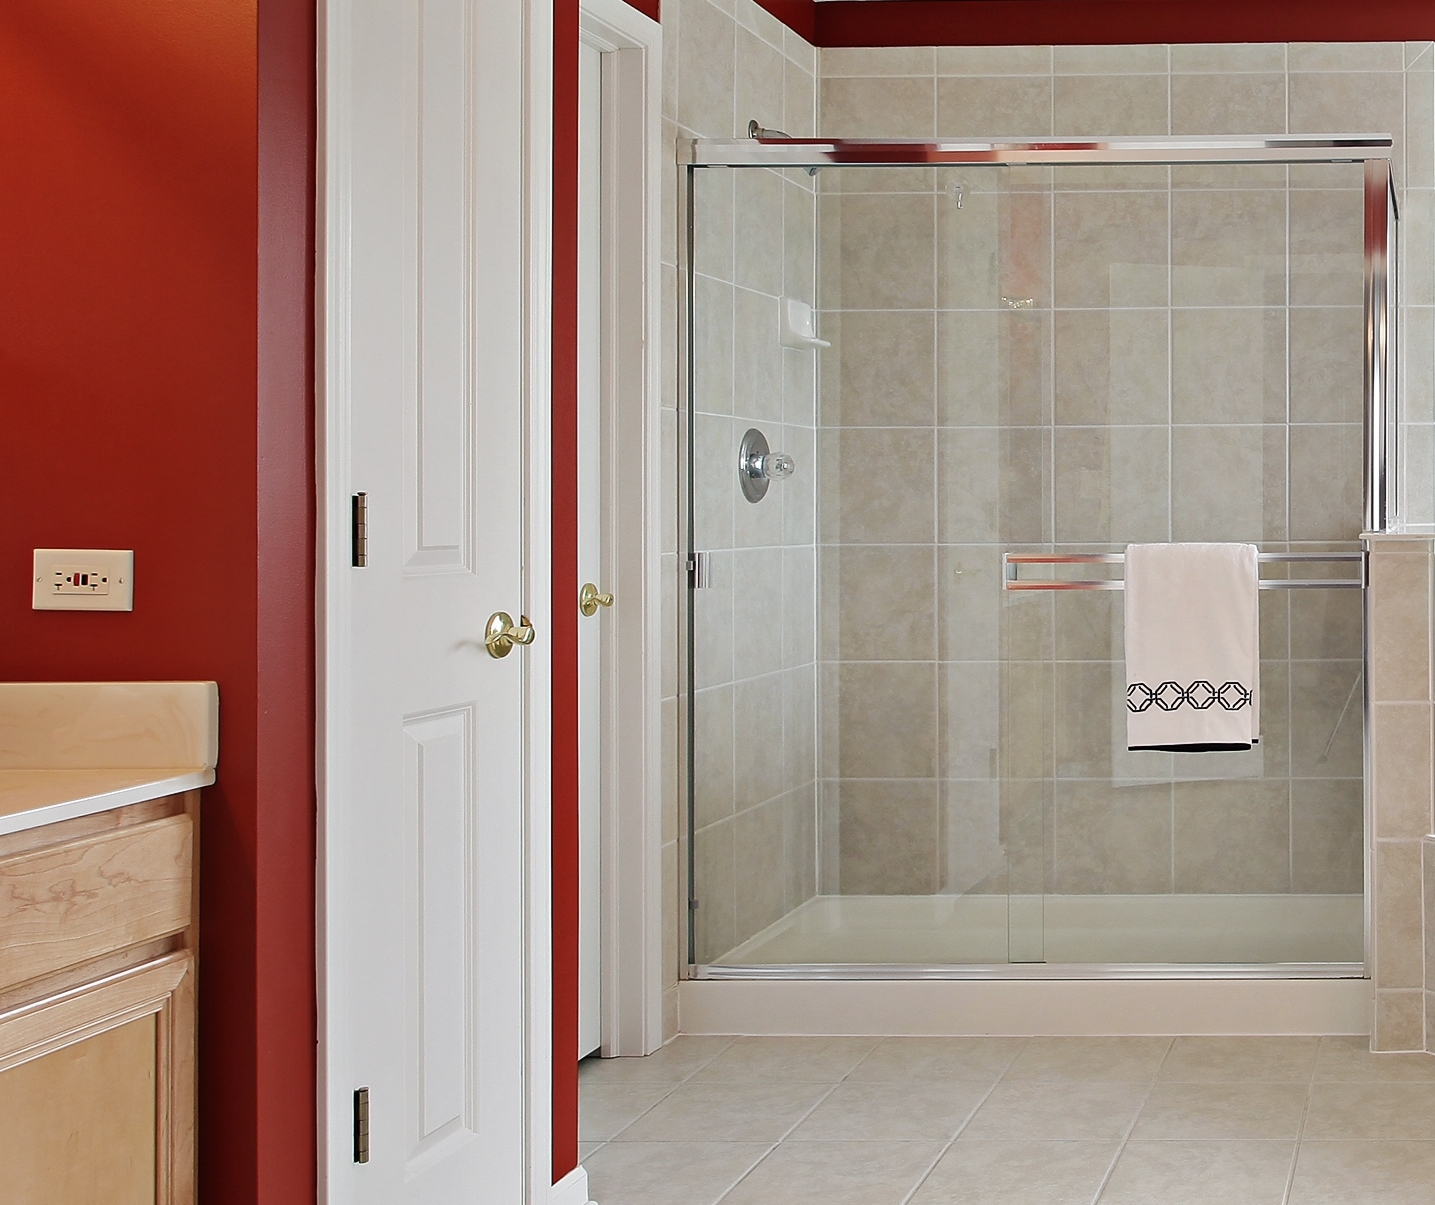 Tub to Shower Conversion | Replace your tub | Mr. Tub